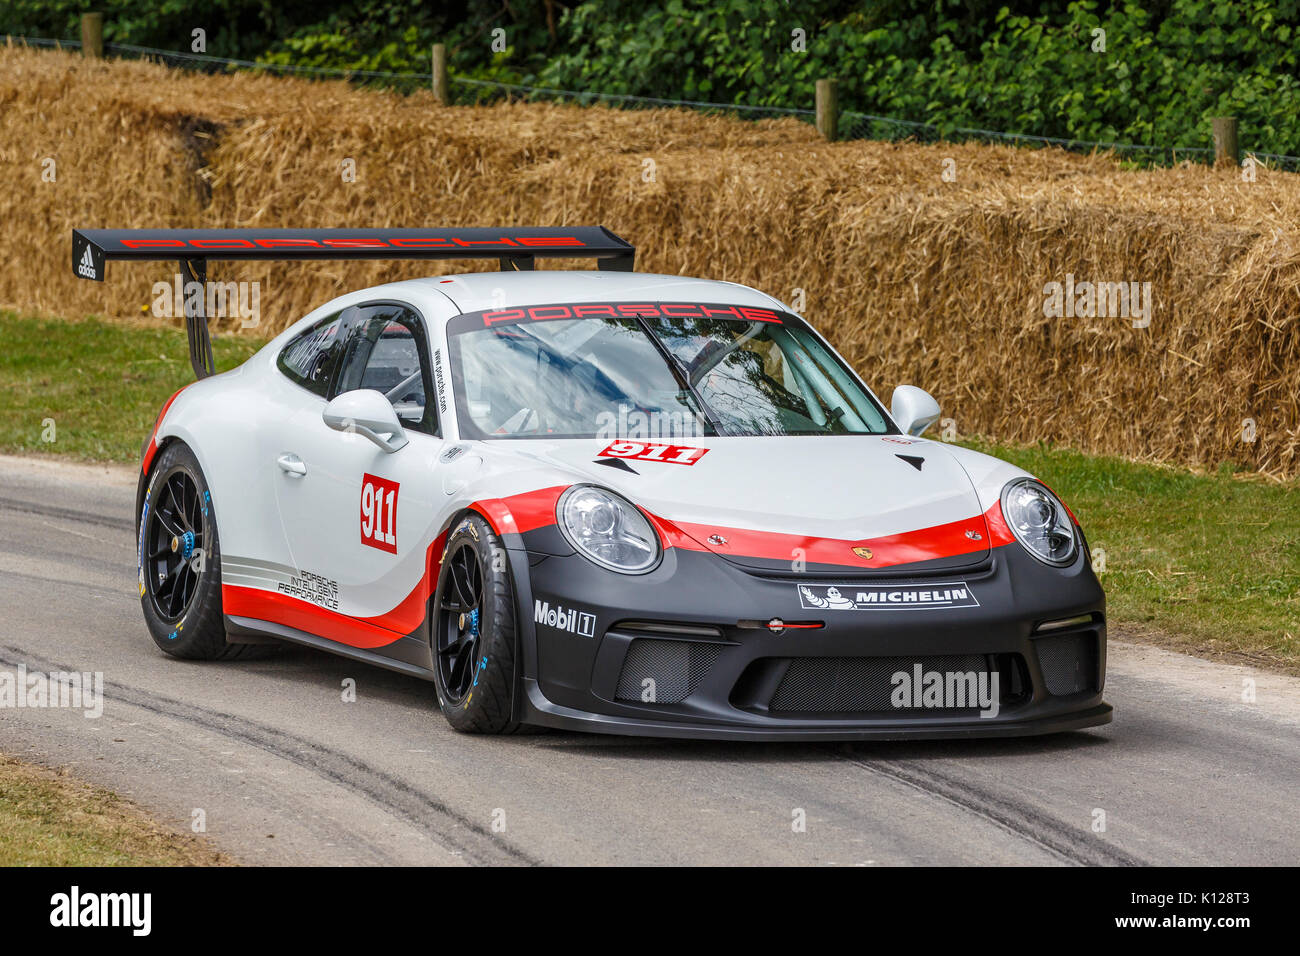 2017 porsche 911 gt3 cup endurance racer with driver. Black Bedroom Furniture Sets. Home Design Ideas